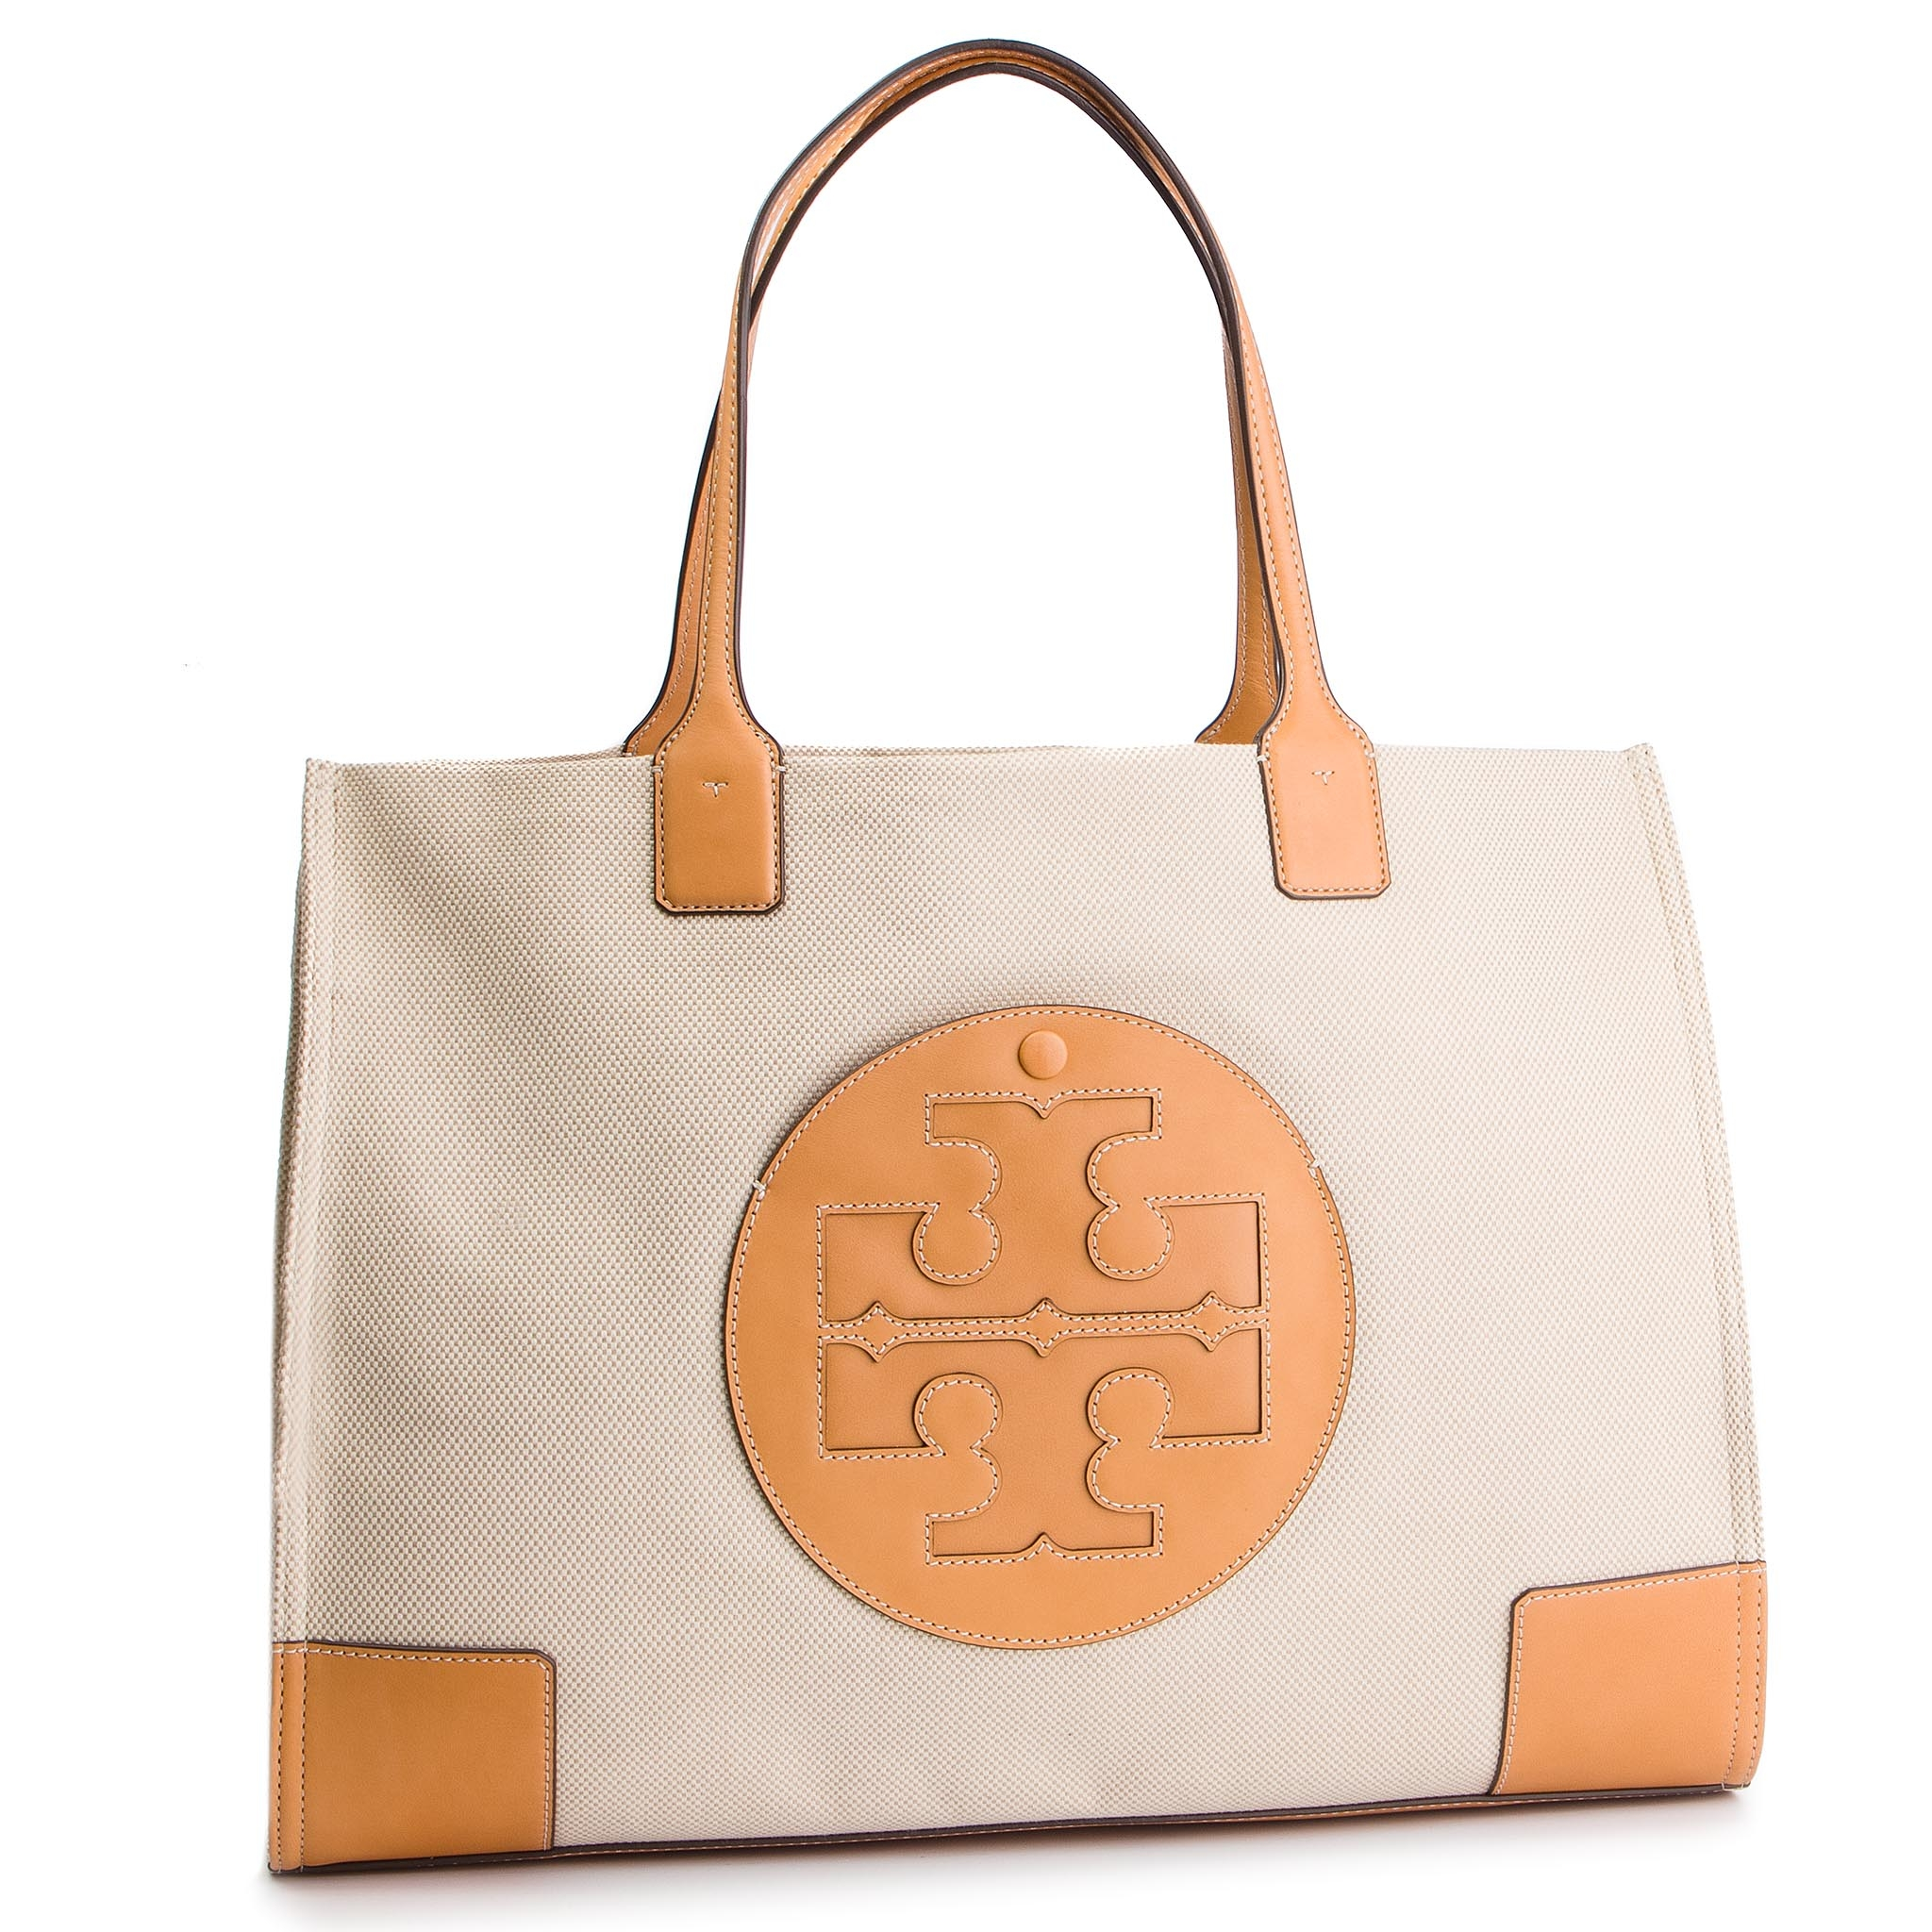 79c6e38a813ea Handbag TORY BURCH. Robinson Small Double-Zip Tote 46331 Pale Apricot Royal  ...